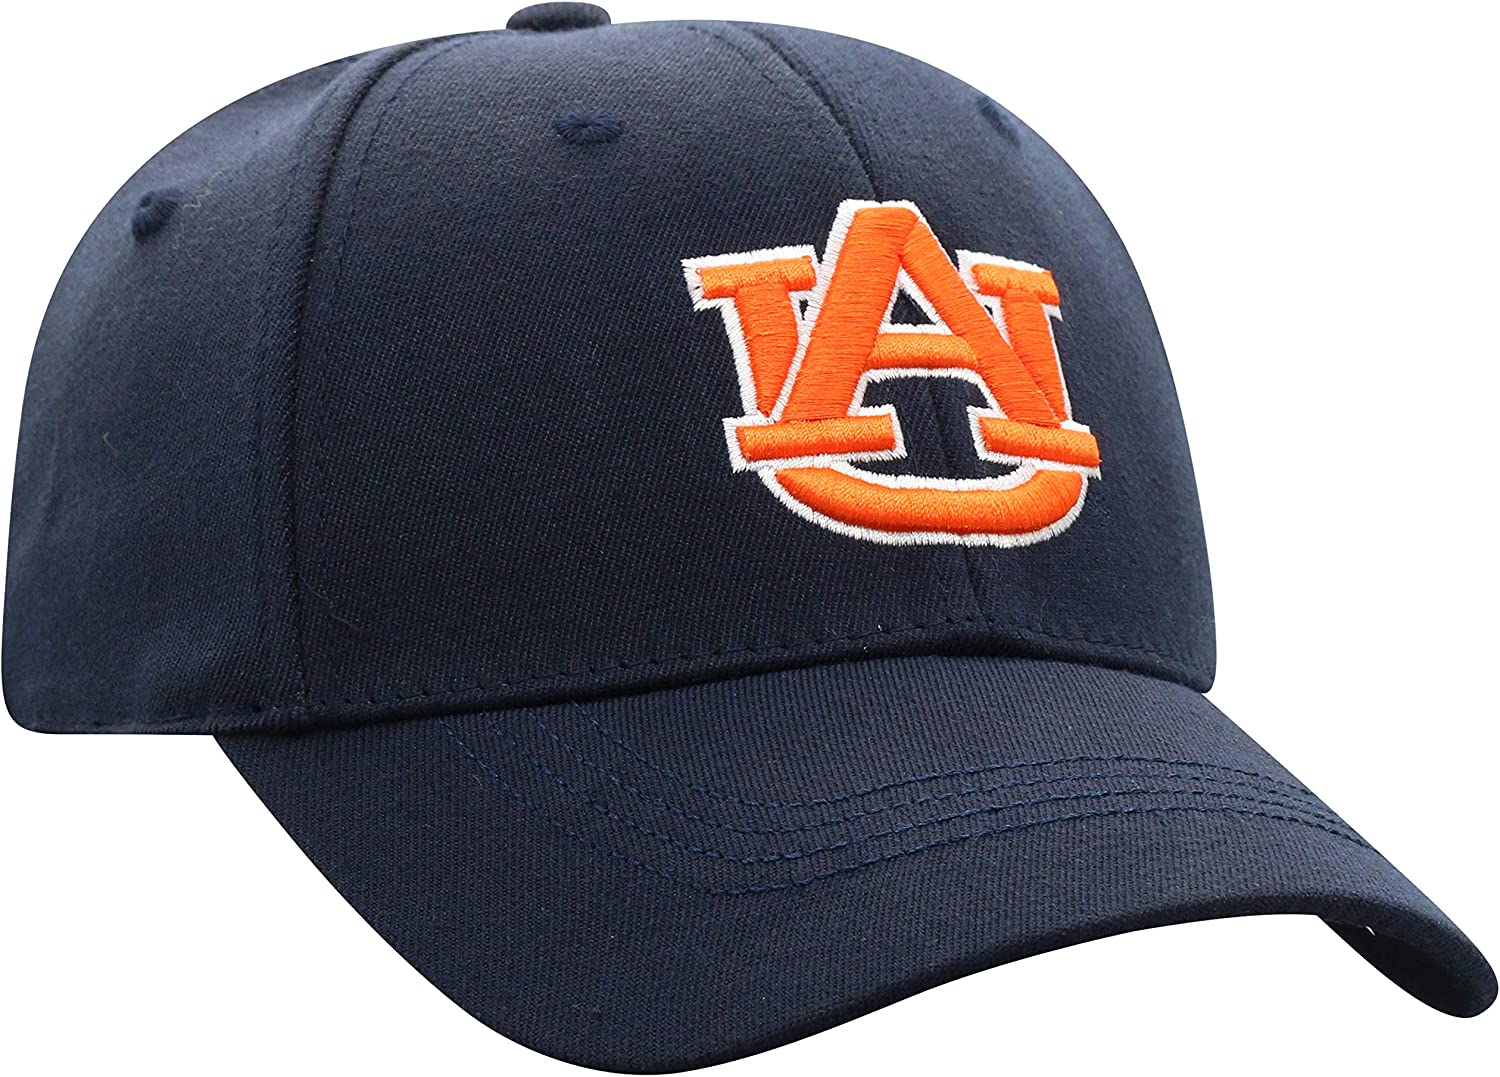 Top of the World NCAA Mens Premium Collection One-Fit Memory Fit Hat White Icon